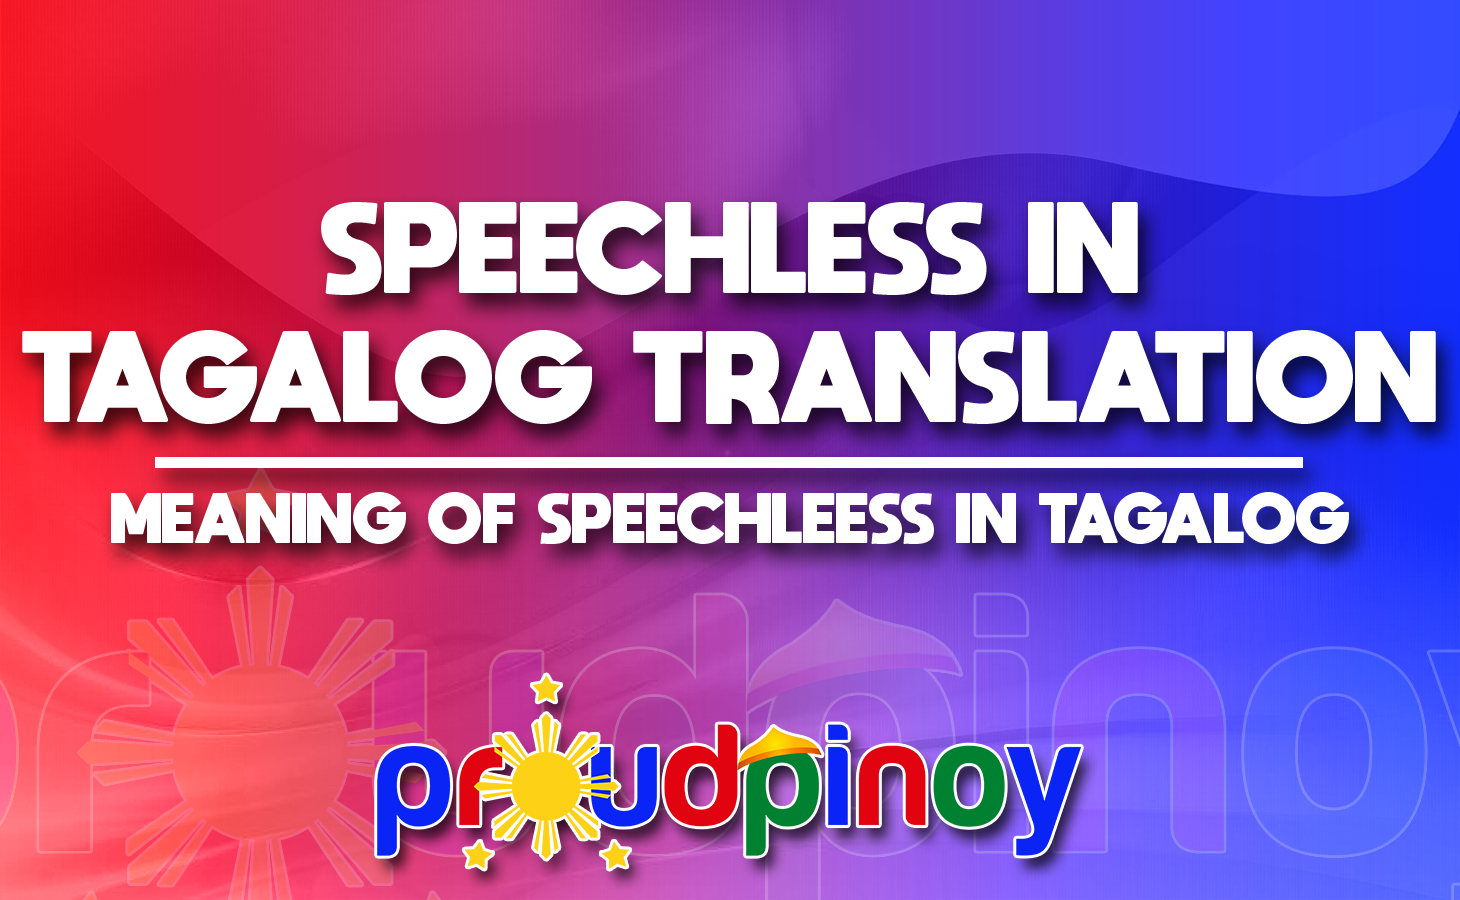 SPEECHLESSS IN TAGALOG TRANSLATION - MEANING OF SPEECHLESS IN TAGALOG